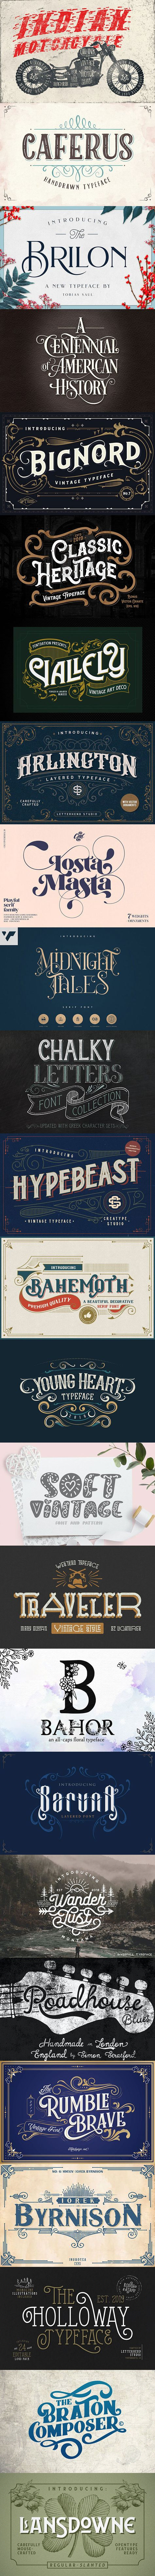 25 Beautiful Ornate Vintage & Retro Fonts